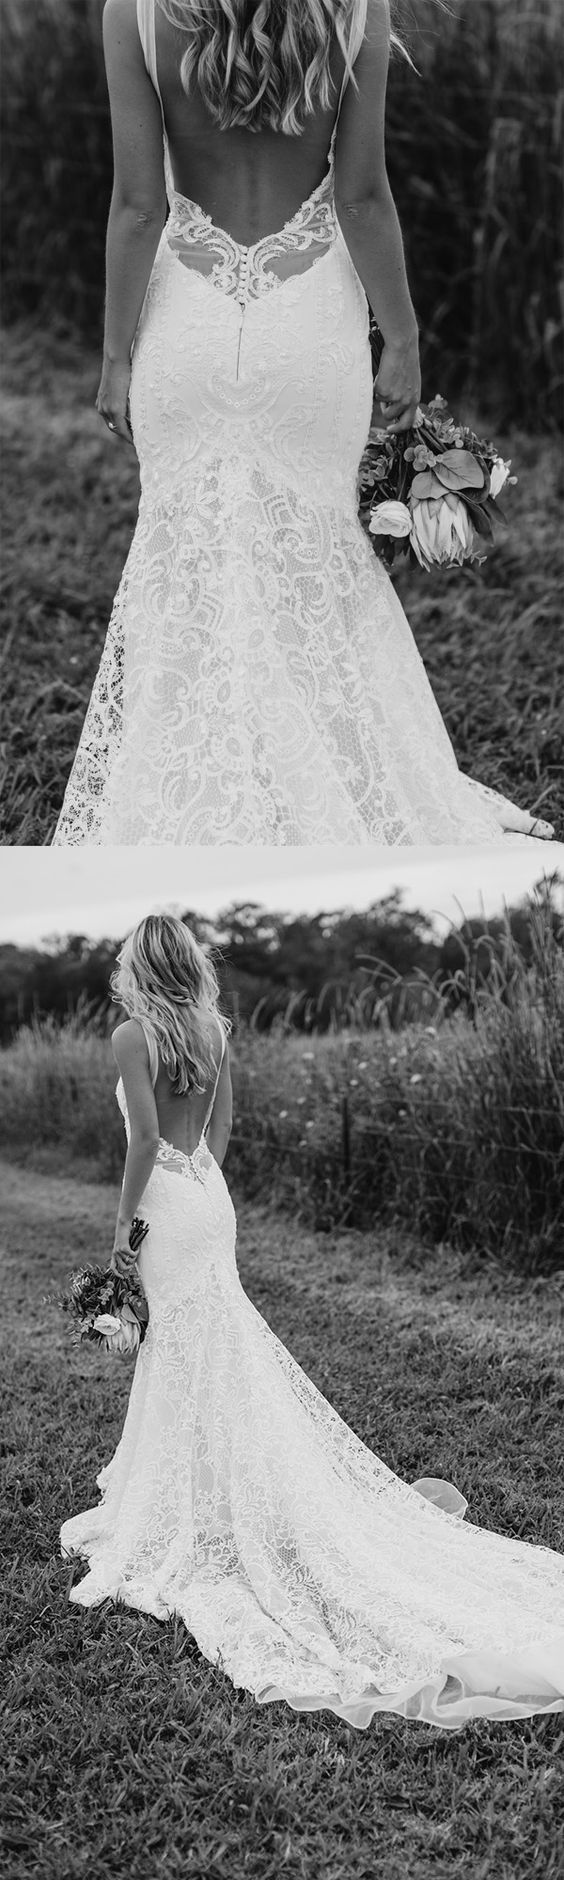 Pin by (17) 17-17 on Wedding dresses  Low back wedding gowns